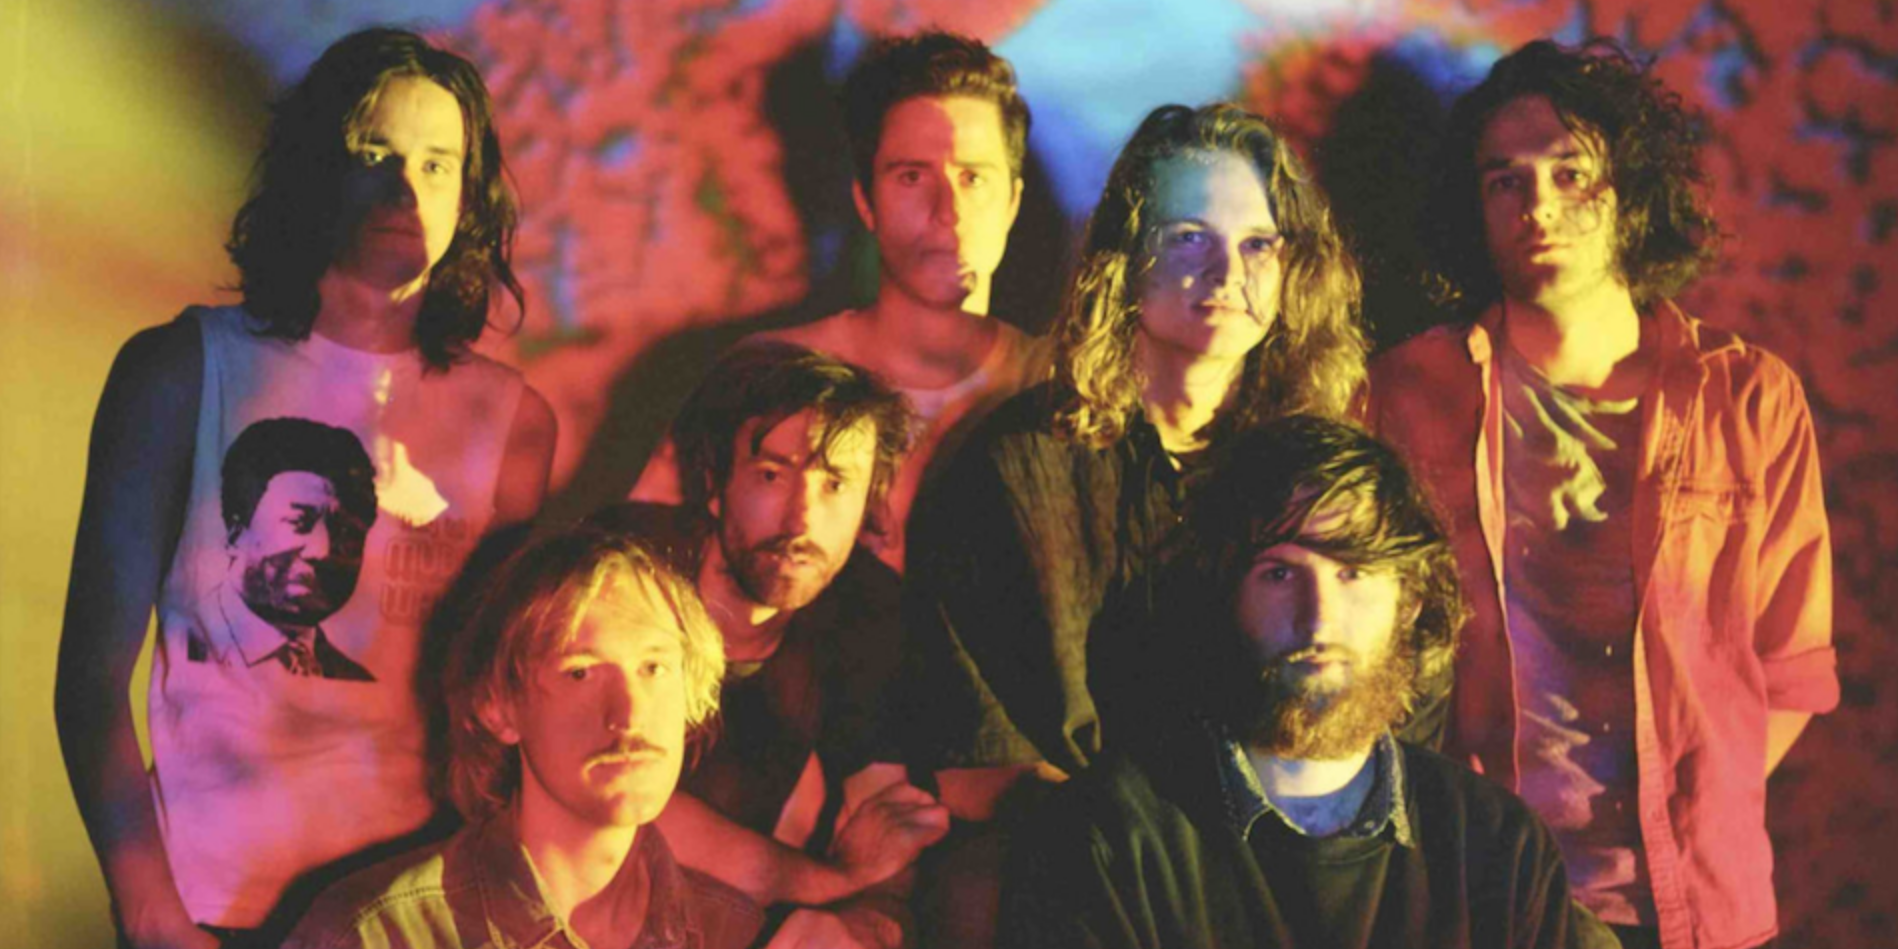 King Gizzard & The Lizard Wizard release new album, Infest the Rats' Nest – listen